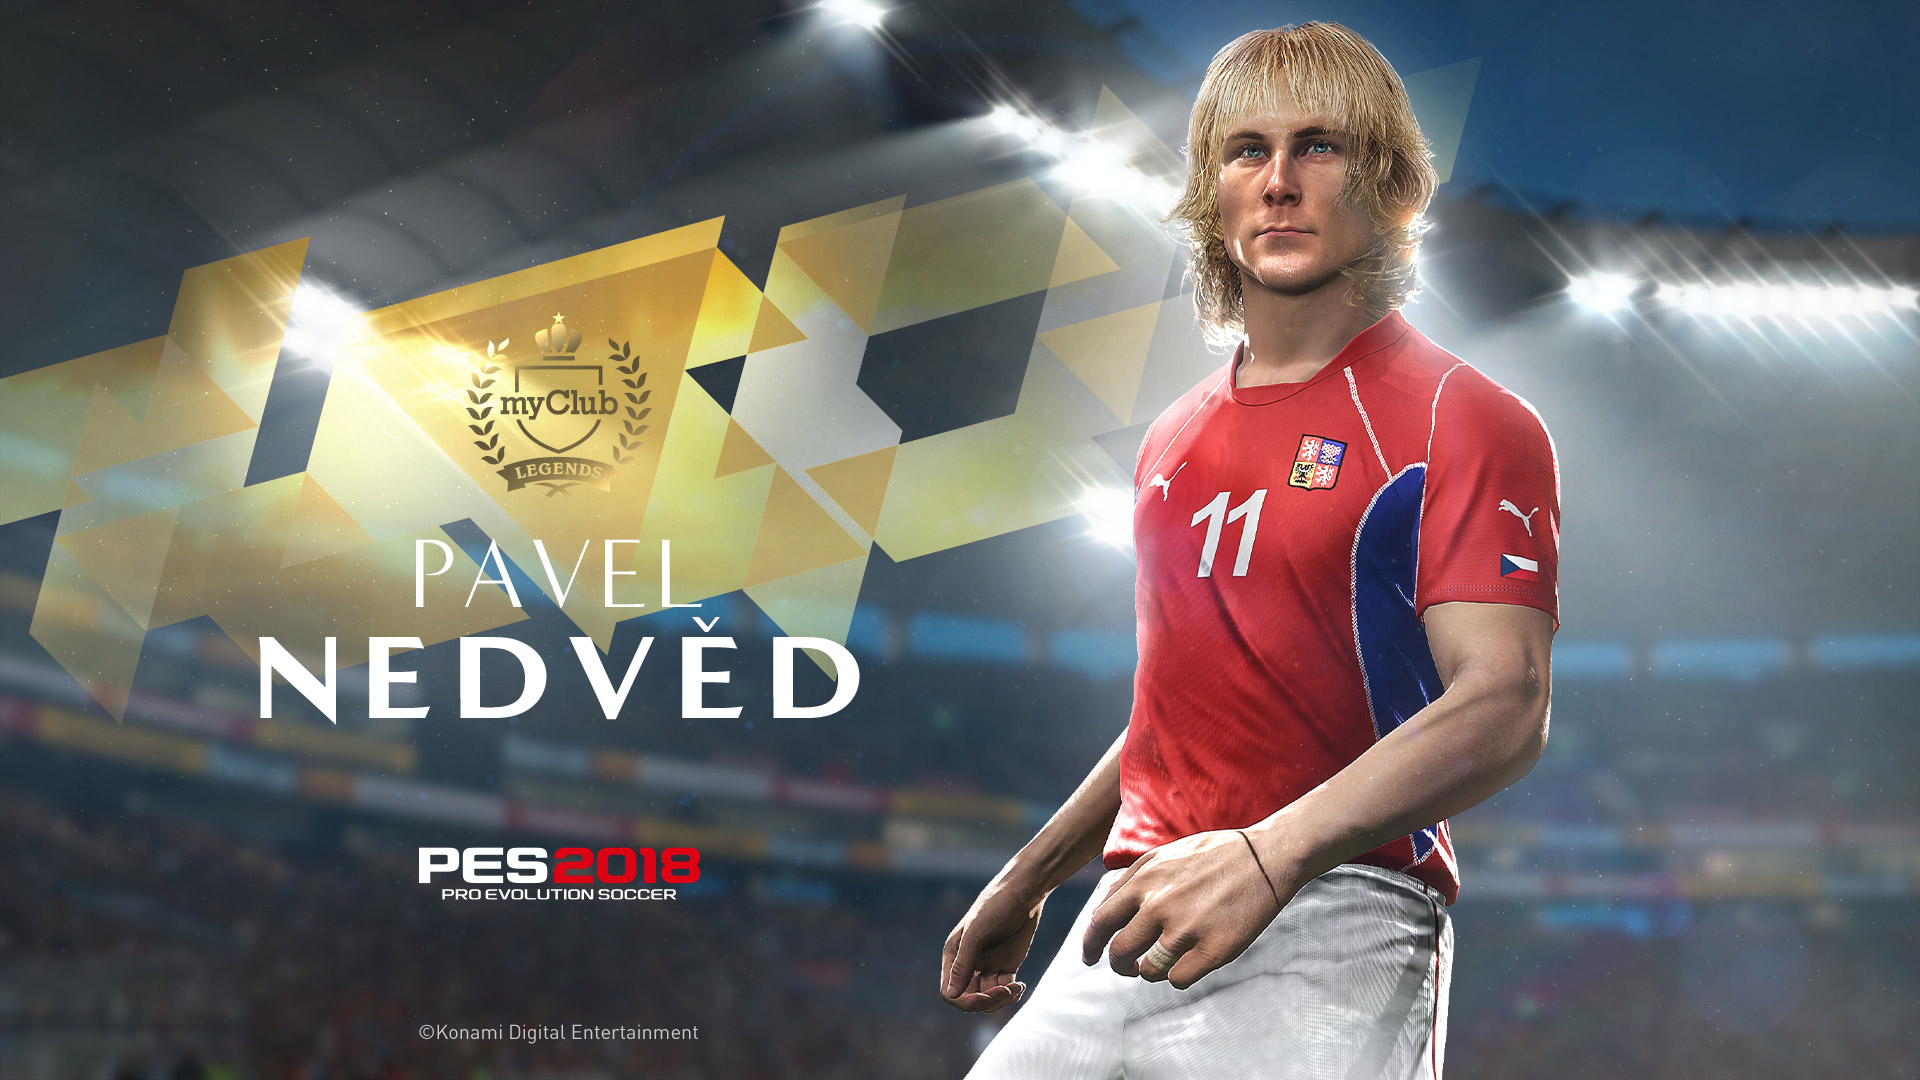 Pes 2018 Test Release Lizenzen Deutsche Teams Alle Infos 2019 Pc Original Steam Offline Quelle Konami